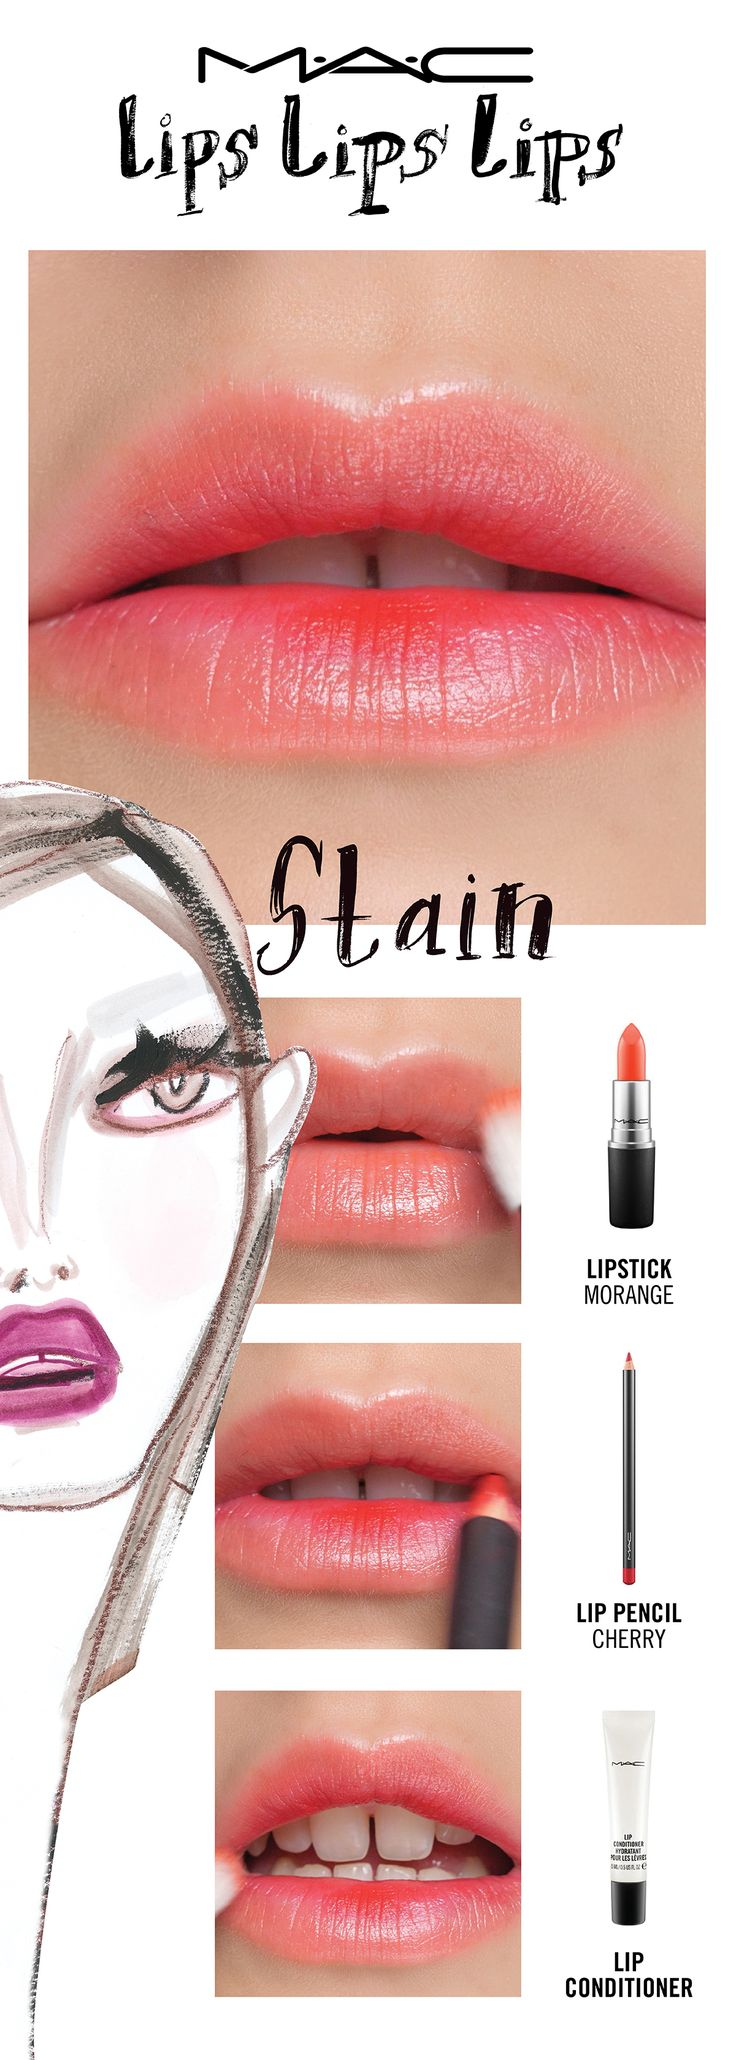 It's summer! Go for a juicy, just-bitten look. Bold colour looks gorgeously natural when applied as a lip stain. For a delicious effect, try The Sherbet Stain seen here! Try a lip trend, then make it your own! Your choice. Your creation. Your trend.  Created by Senior Artist Melissa Gibson, inspired by Shawn Xu.